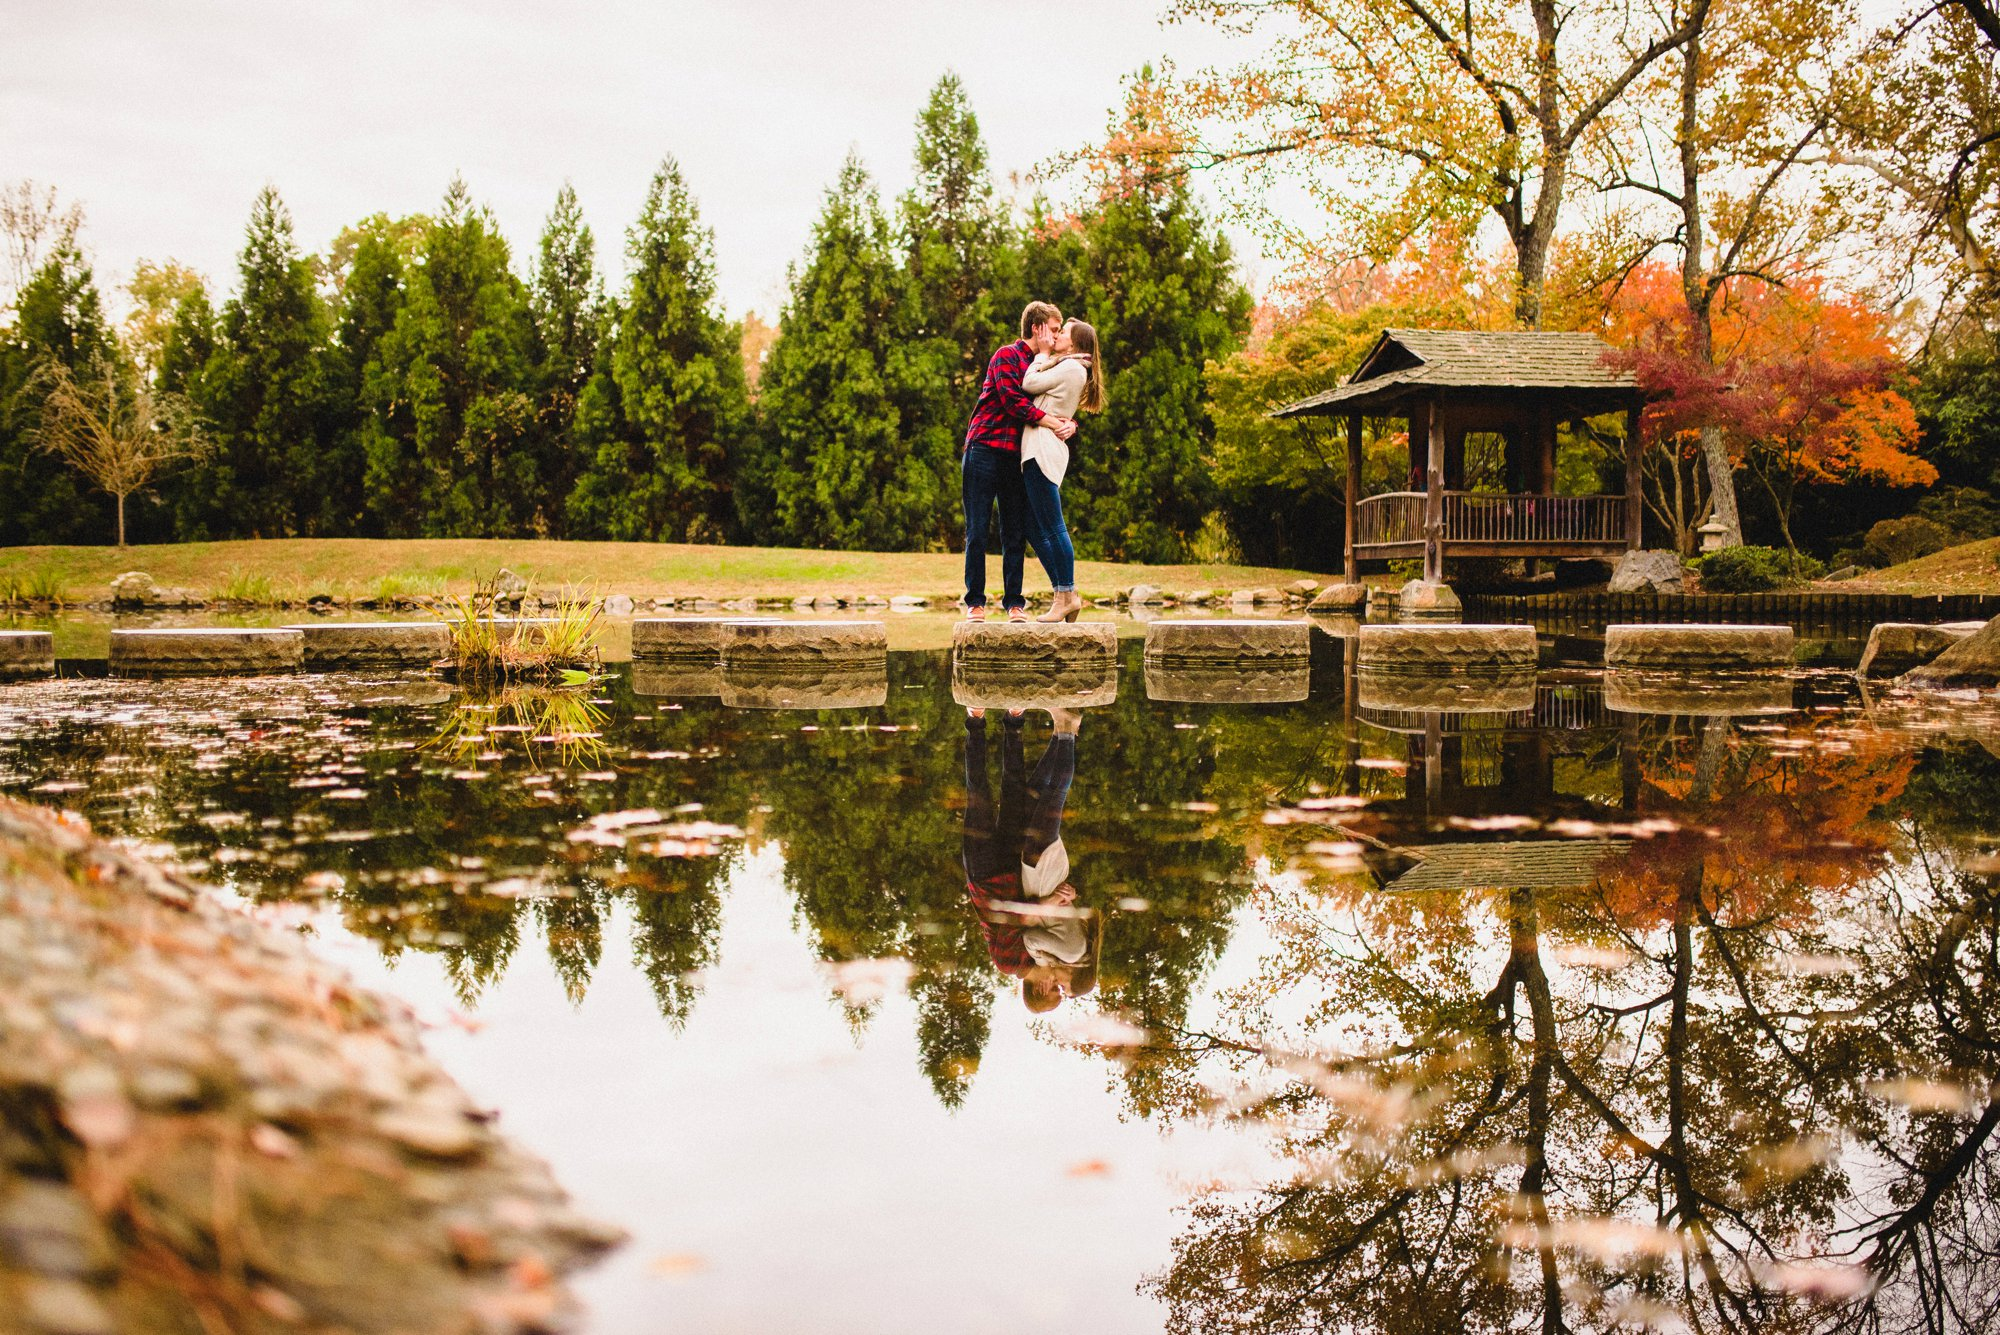 engagement-photography-88-love-stories-30.jpg